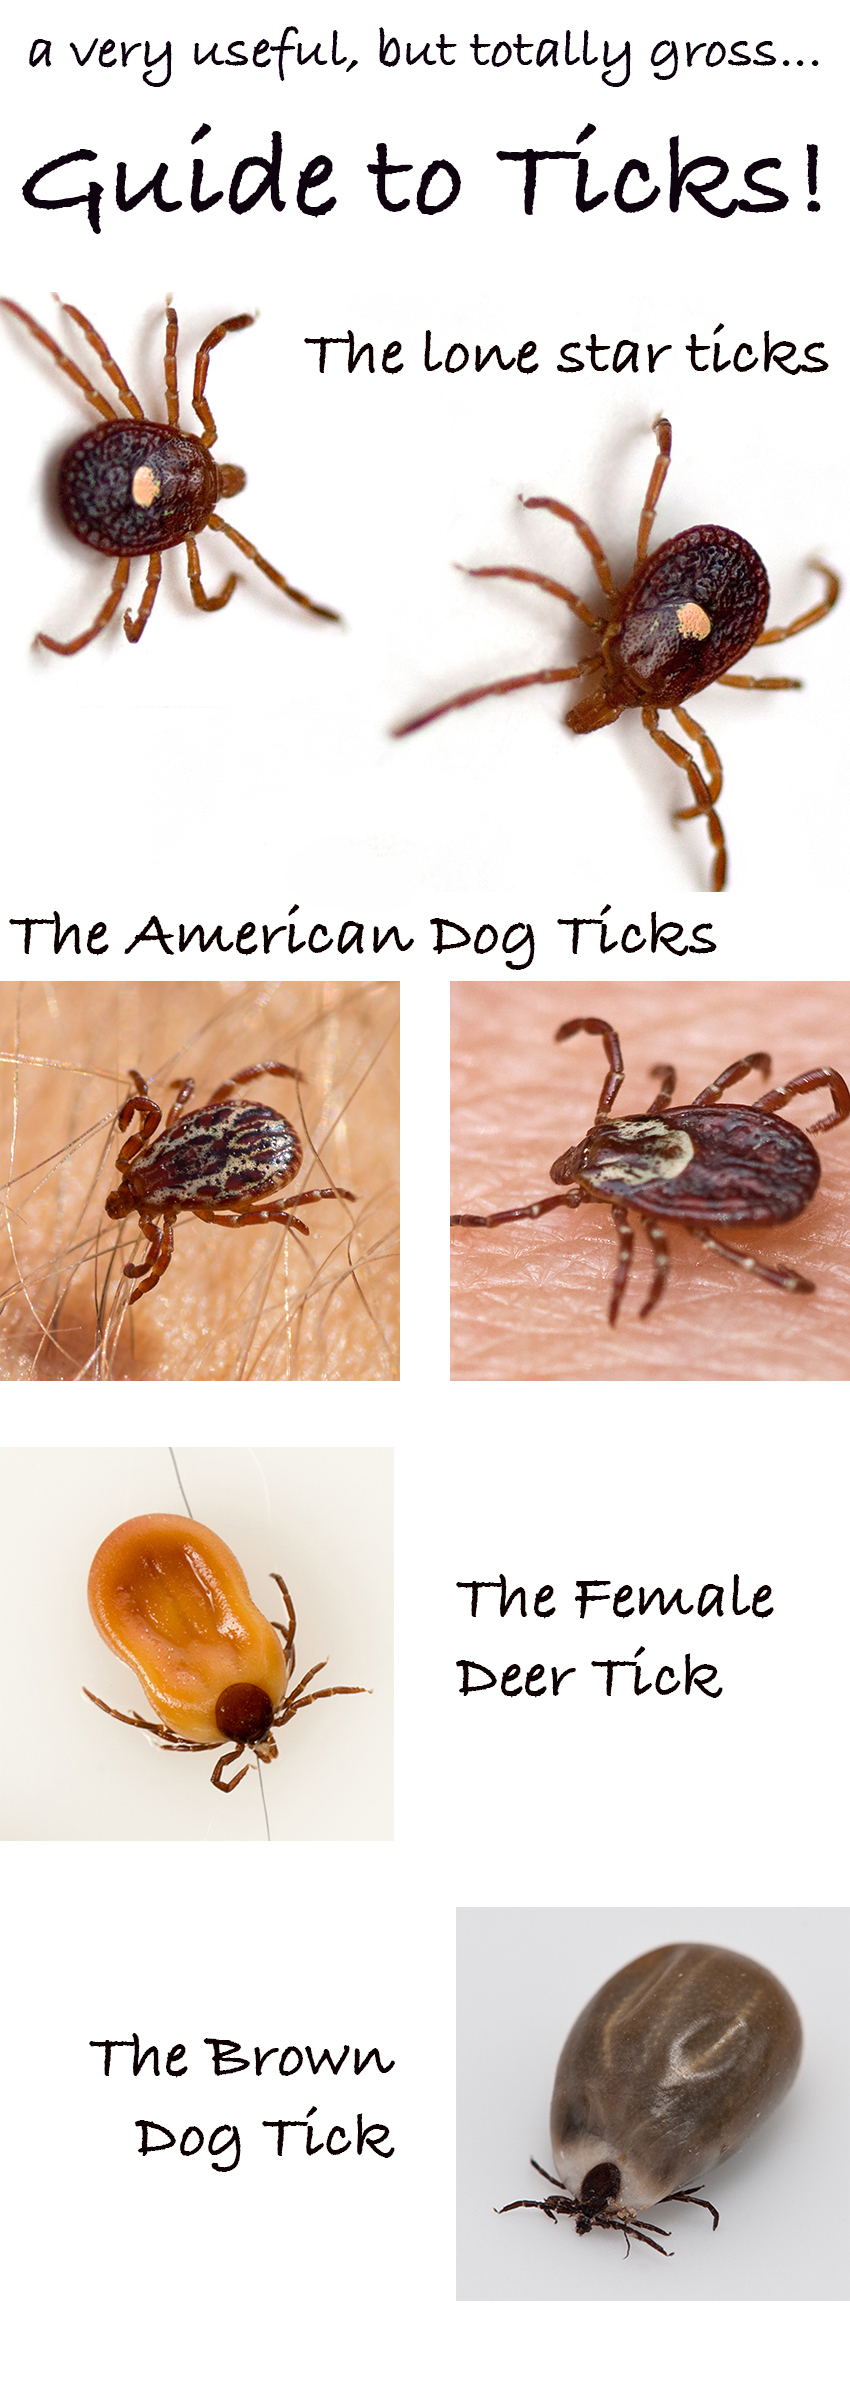 Pictures of ticks - A guide to identifying different tick breeds